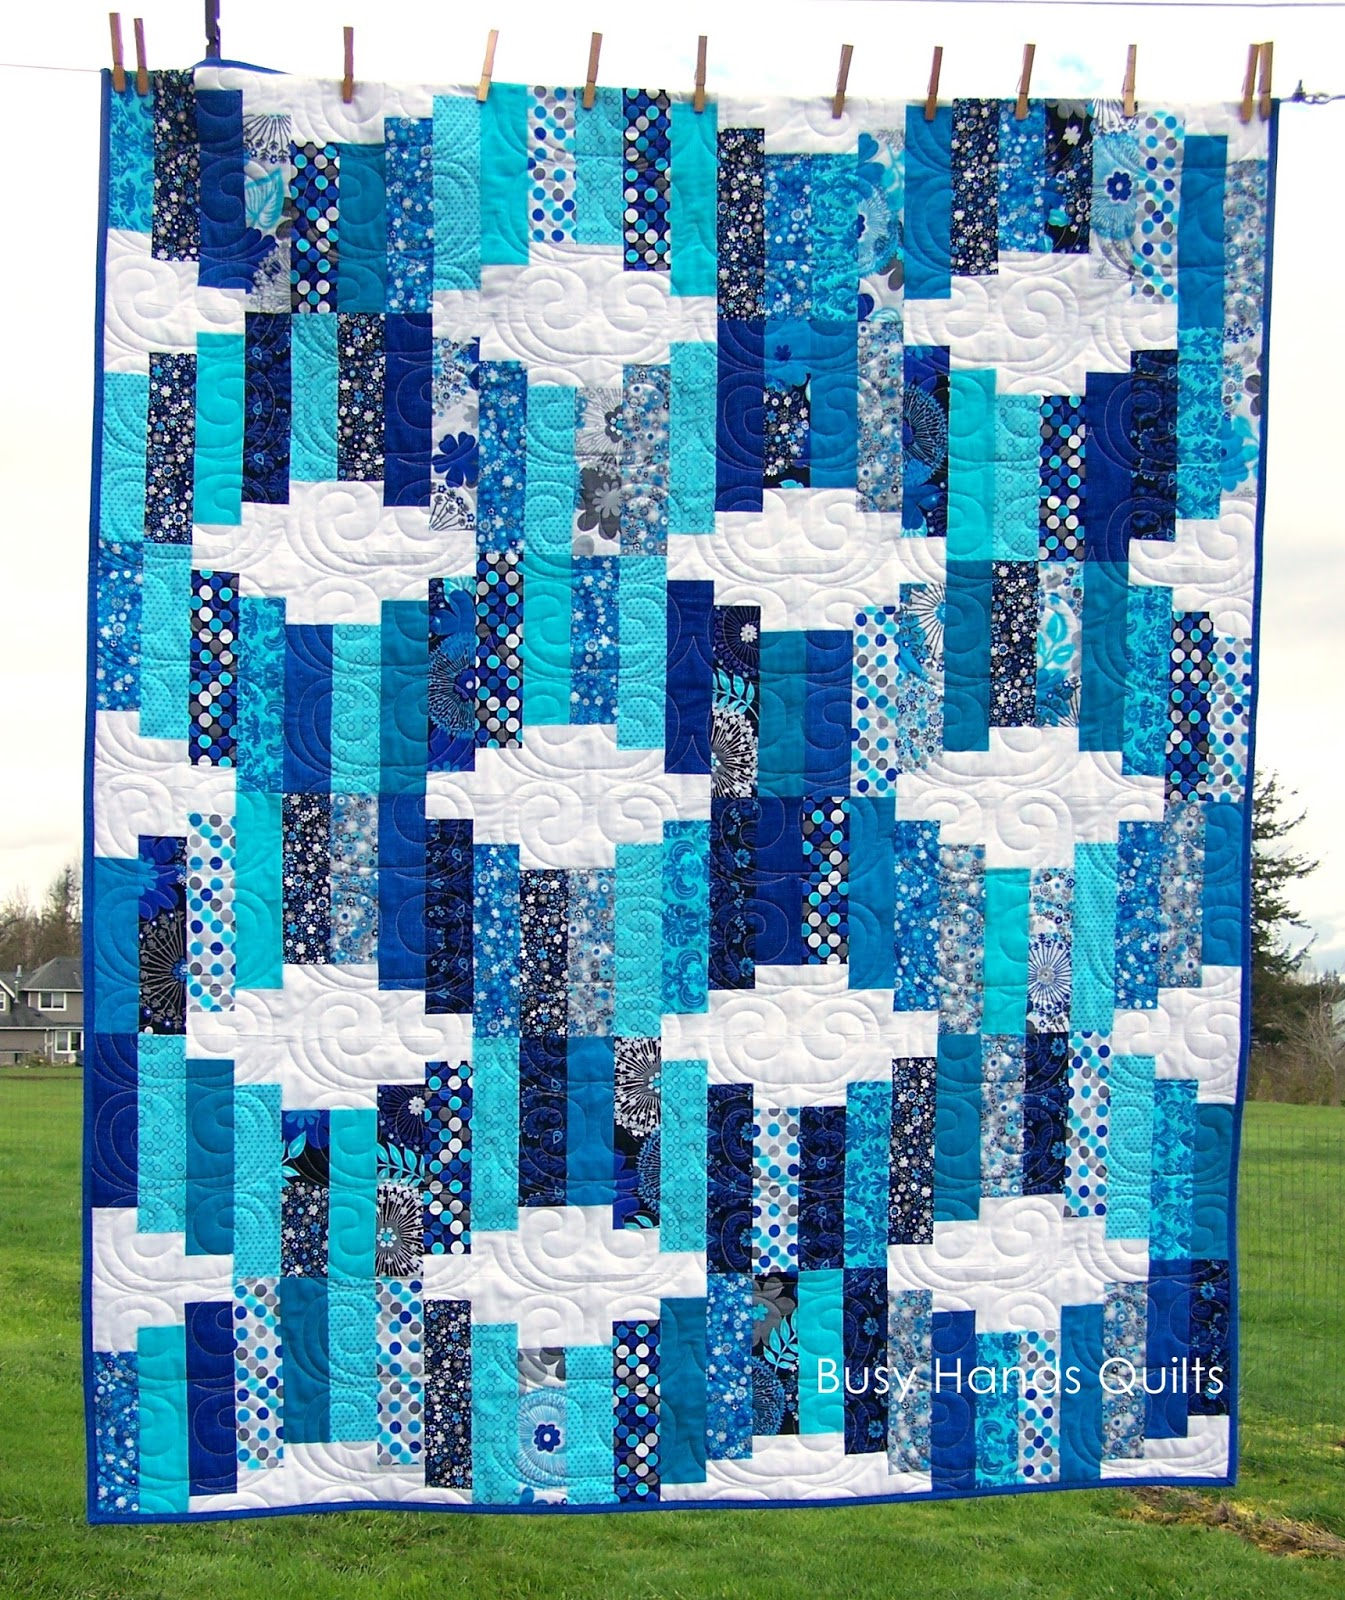 Busy Hands Quilts 2017